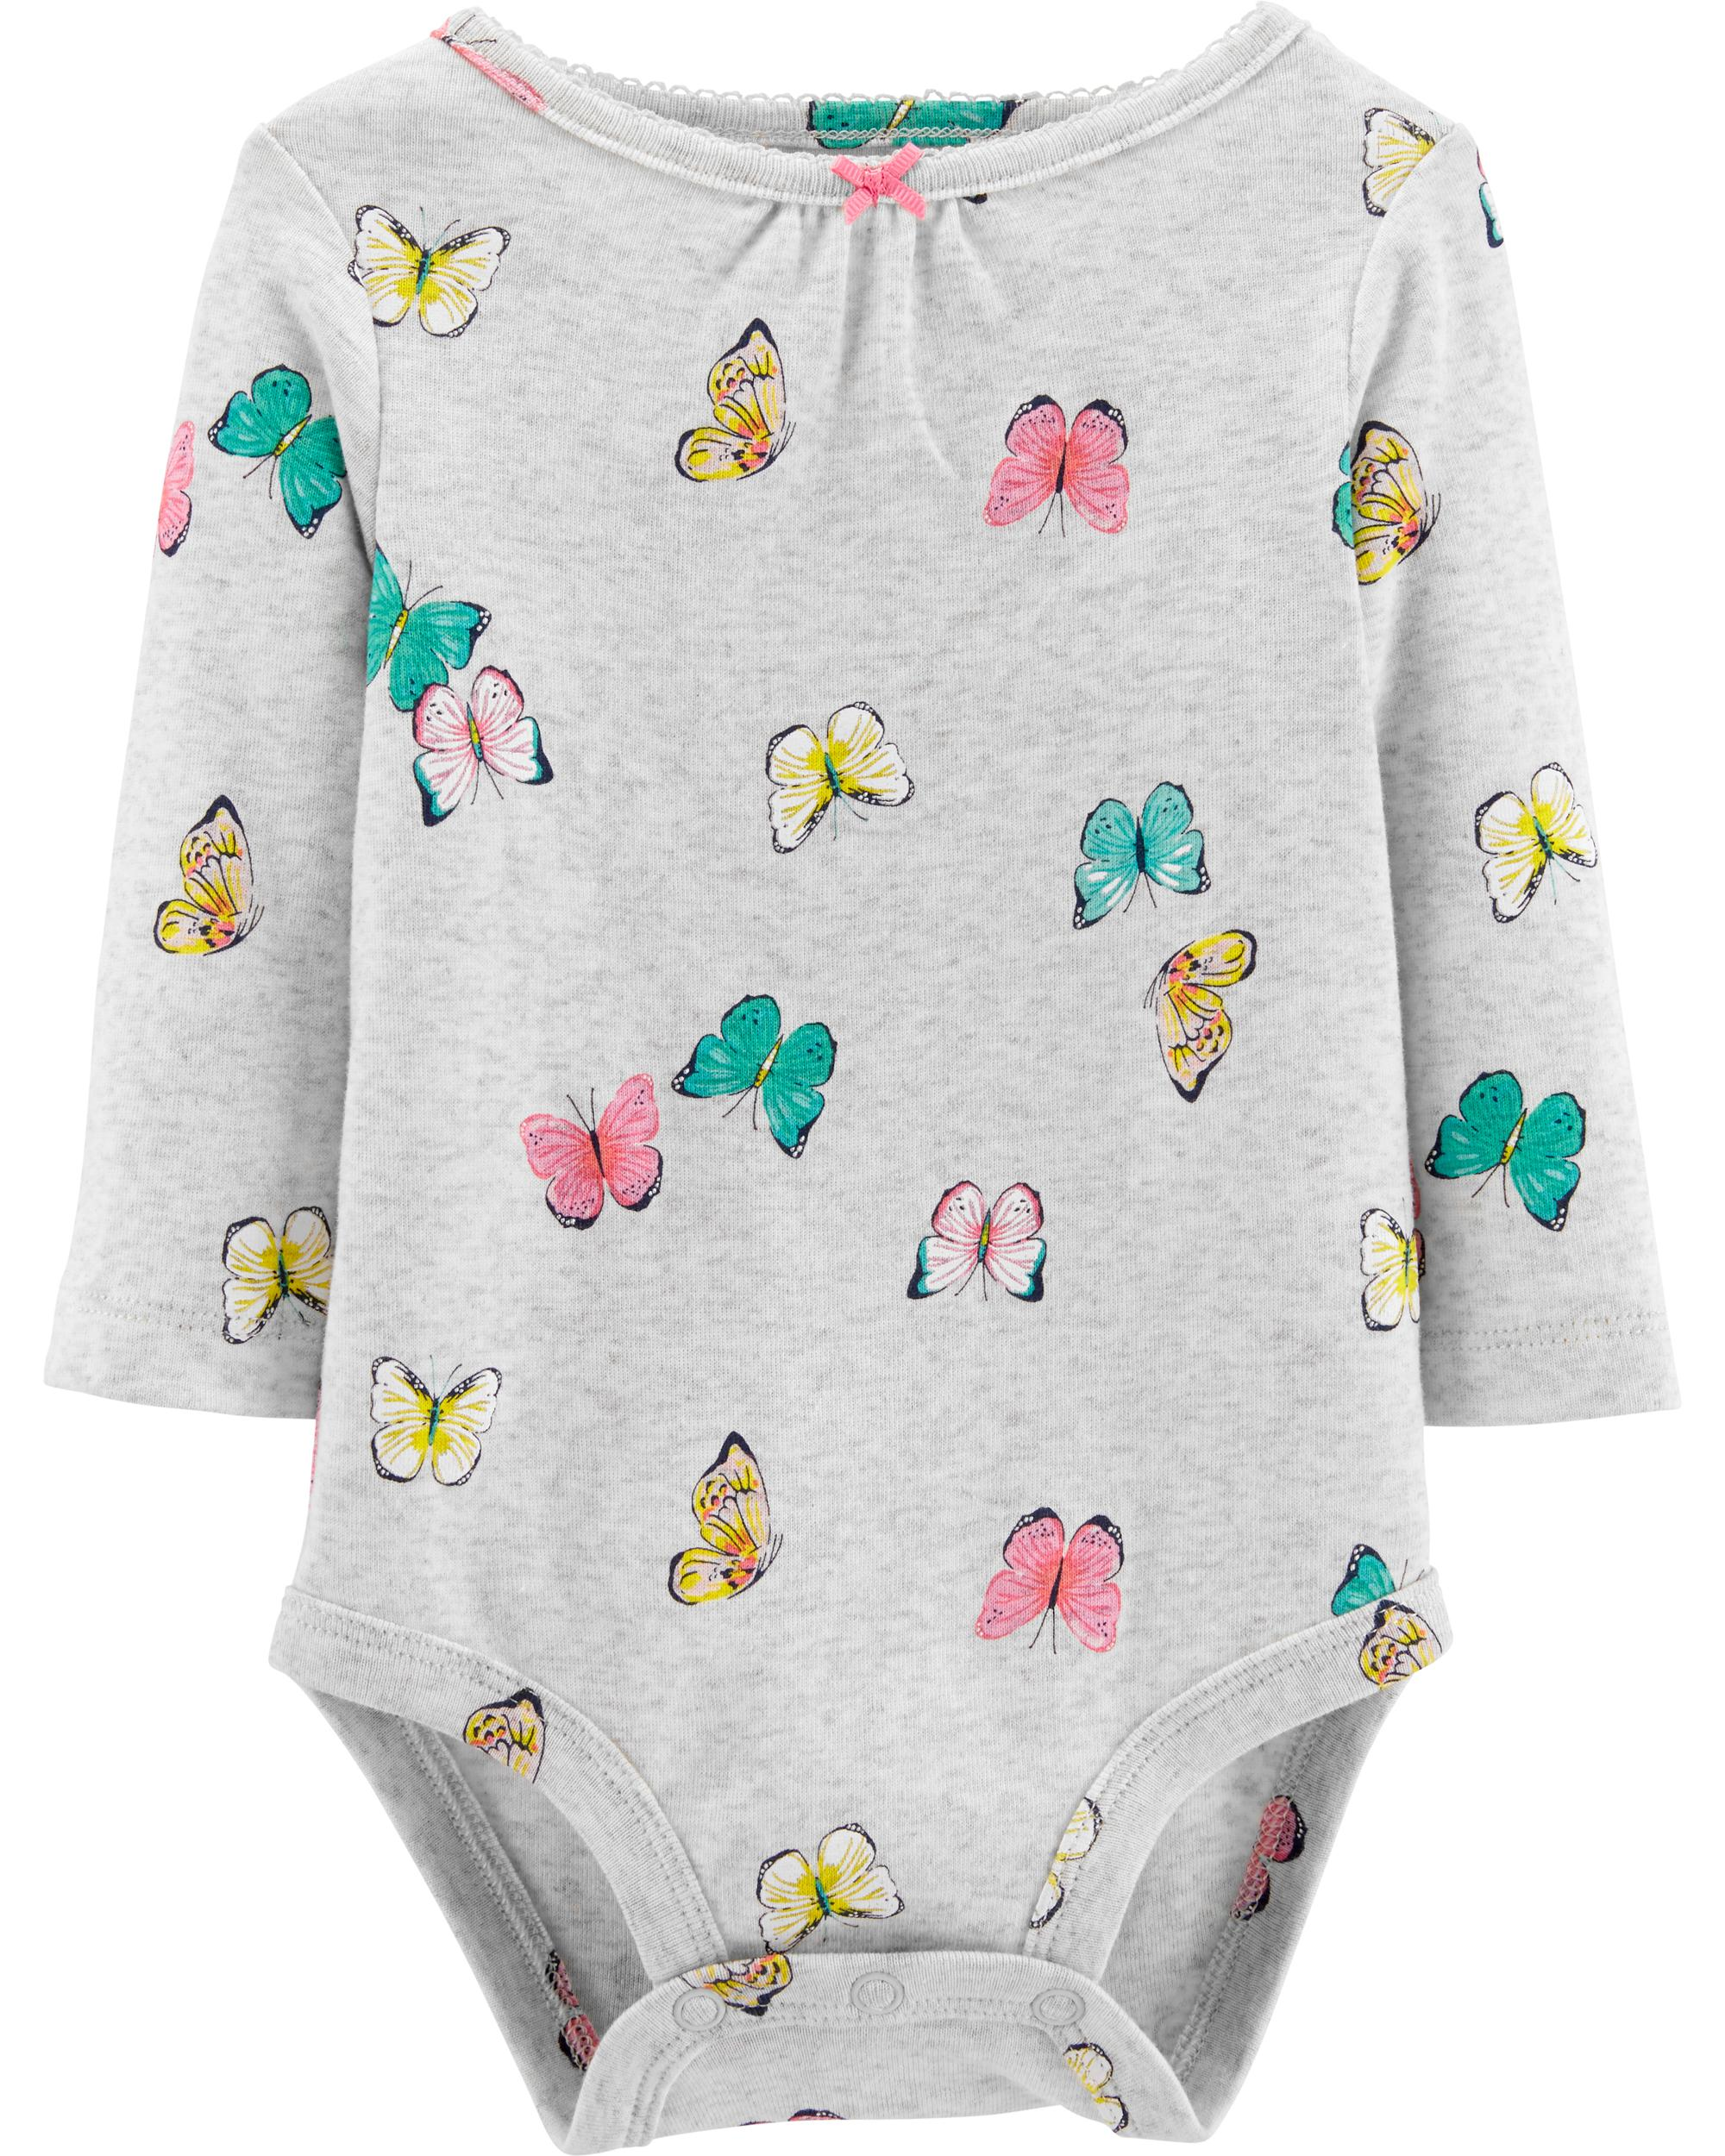 Butterfly Collectible Bodysuit Carters Com